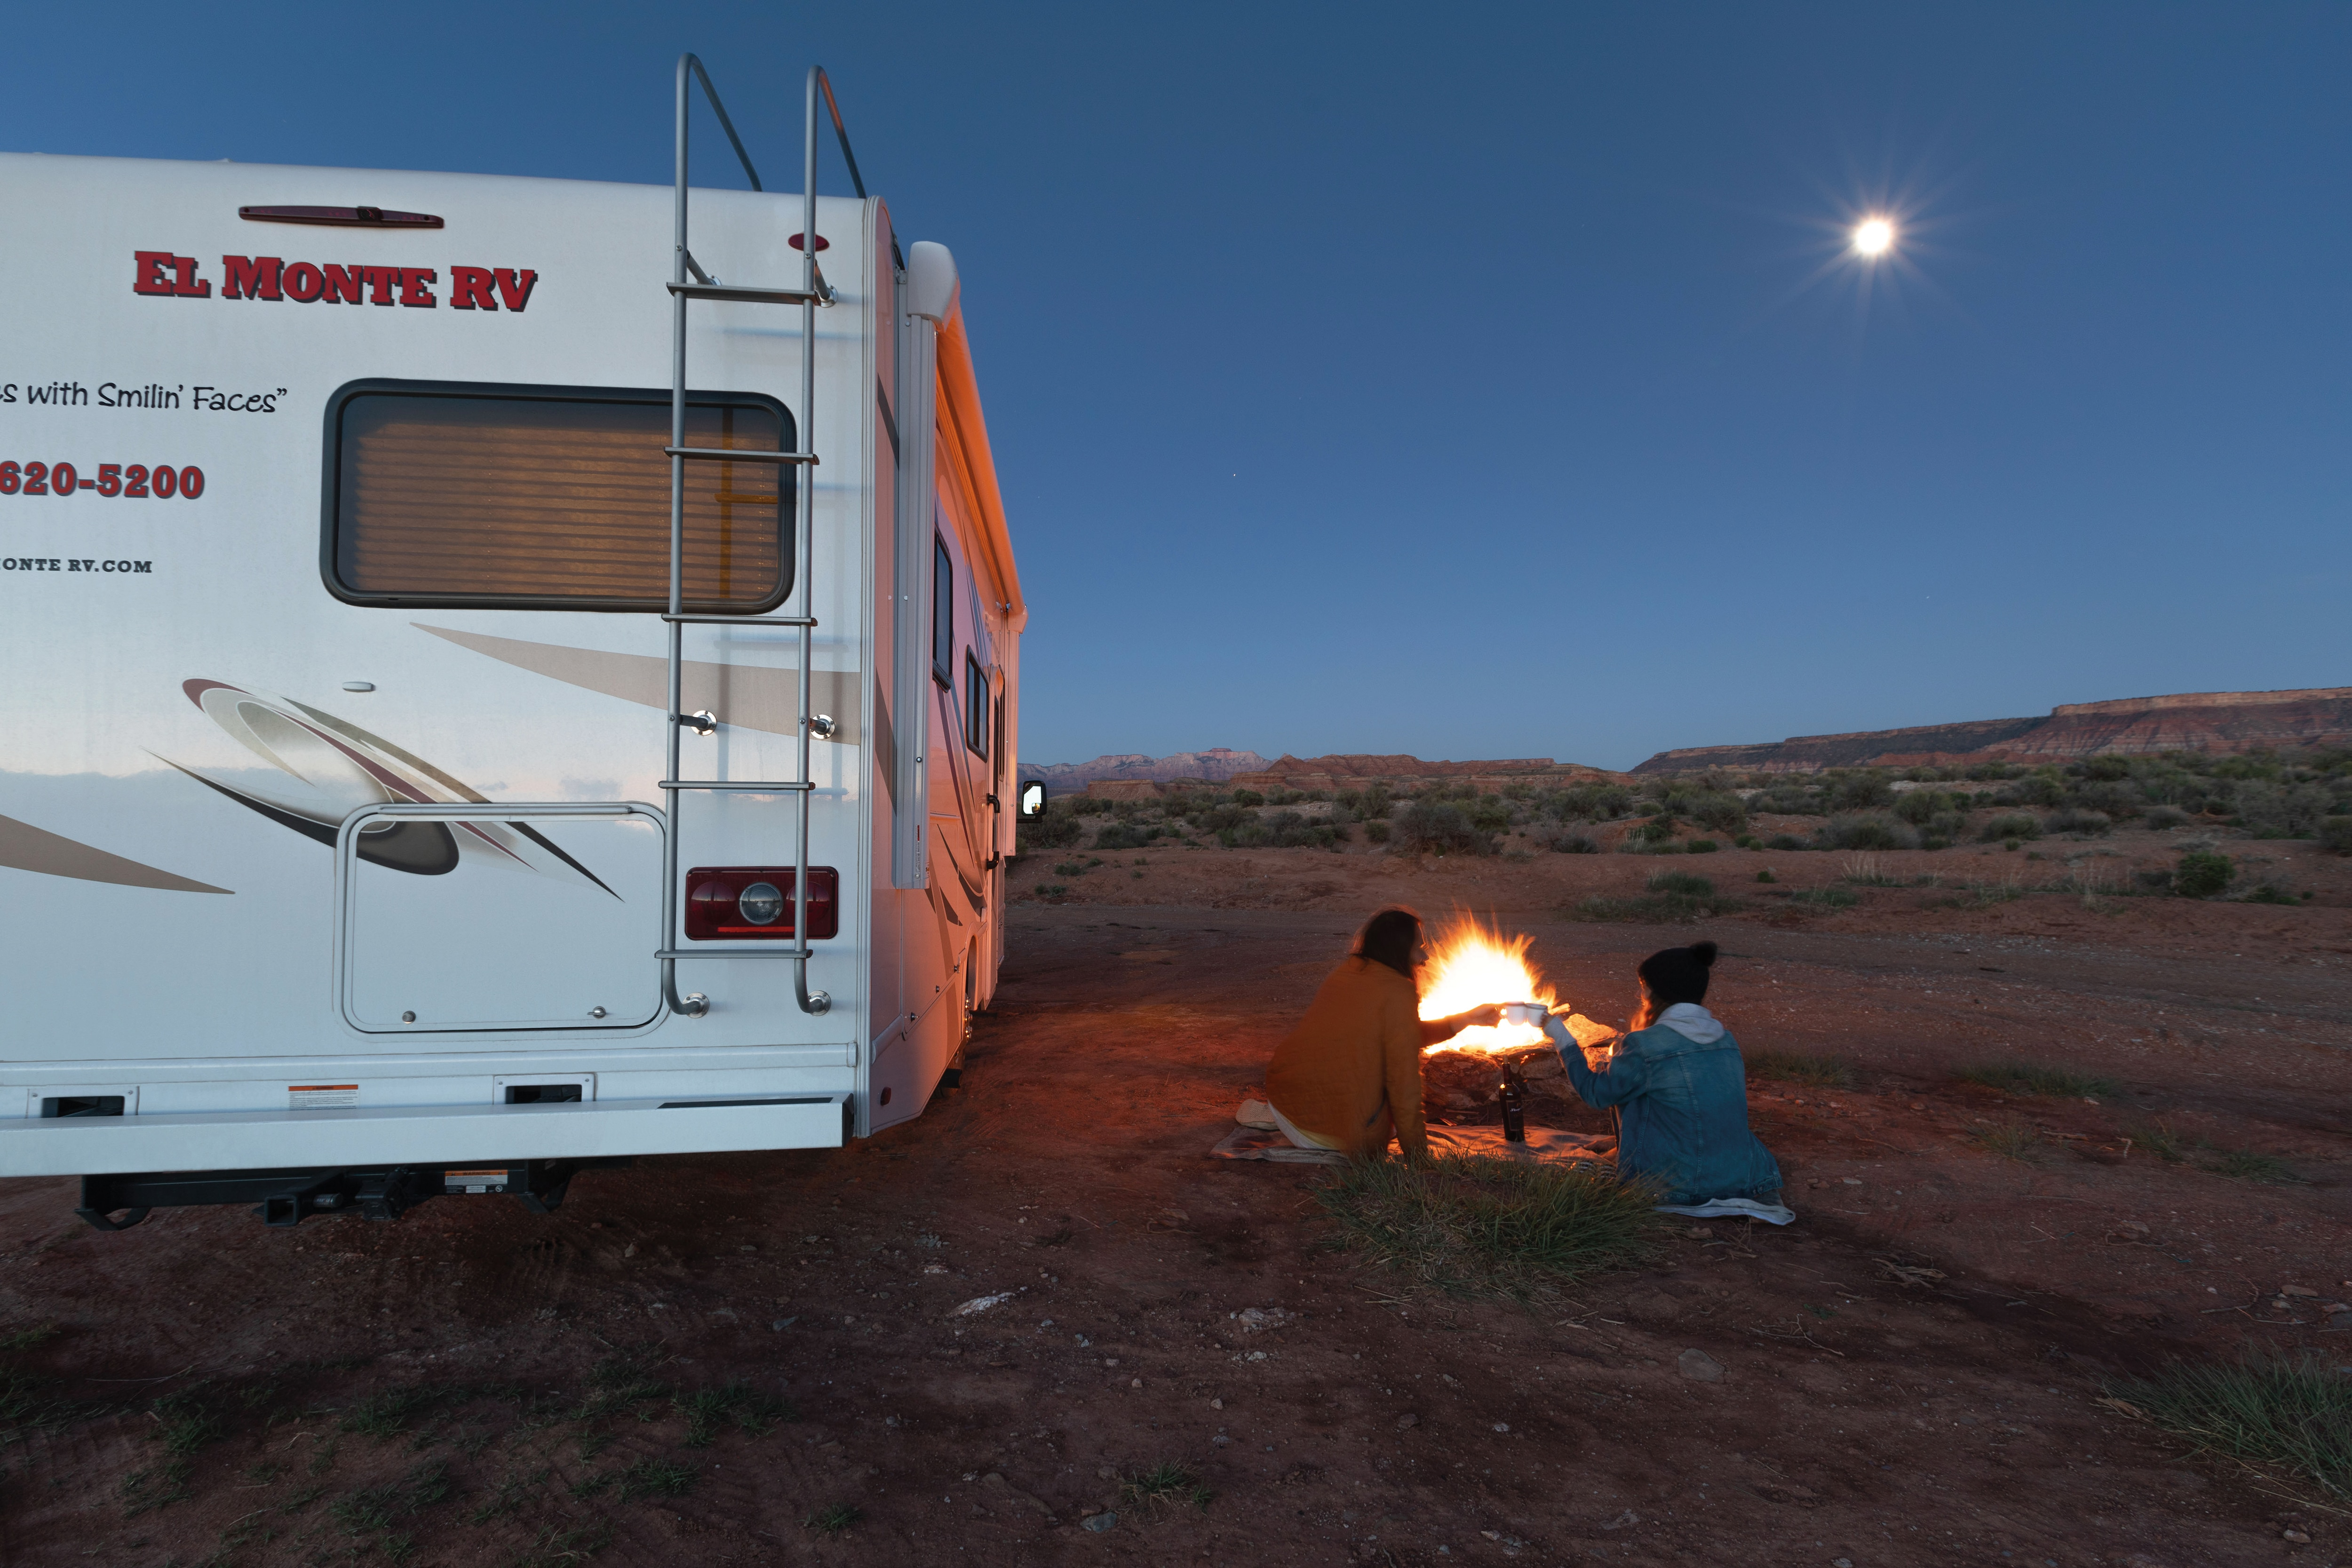 Couple making a camp fire in the desert next to El Monte RV.